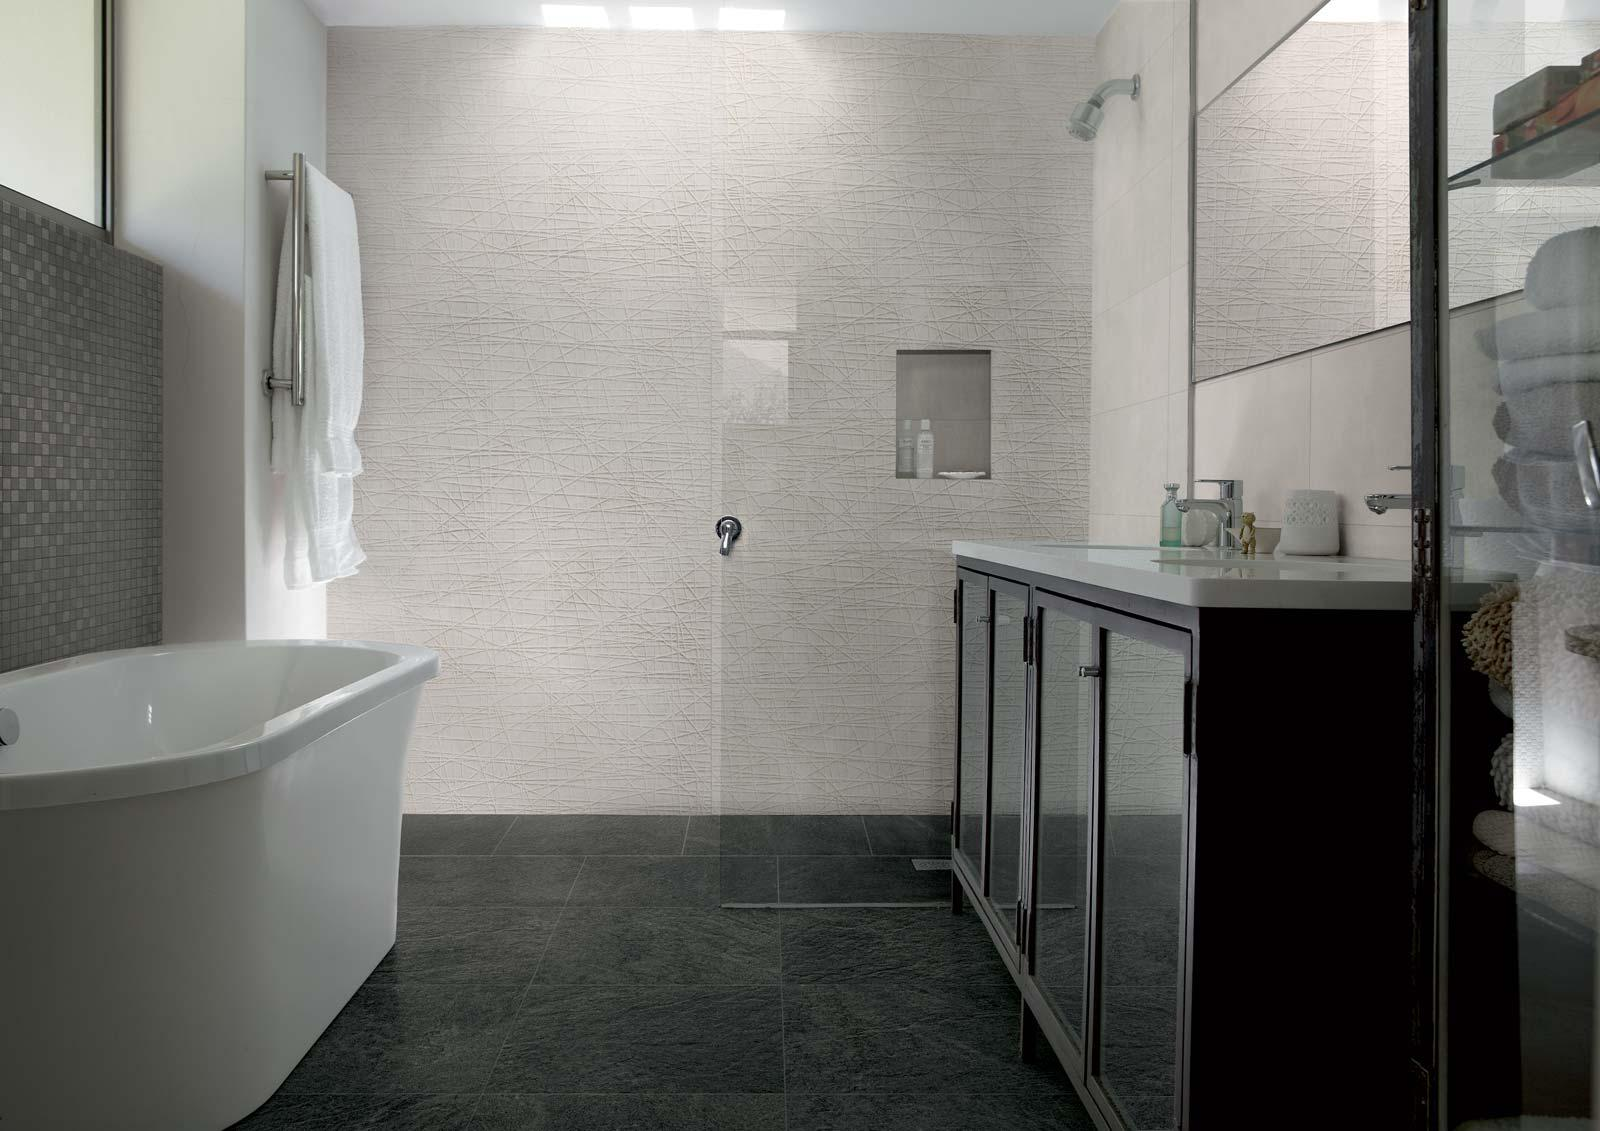 fabric the wall tiles inspired by nature marazzi rh marazzigroup com